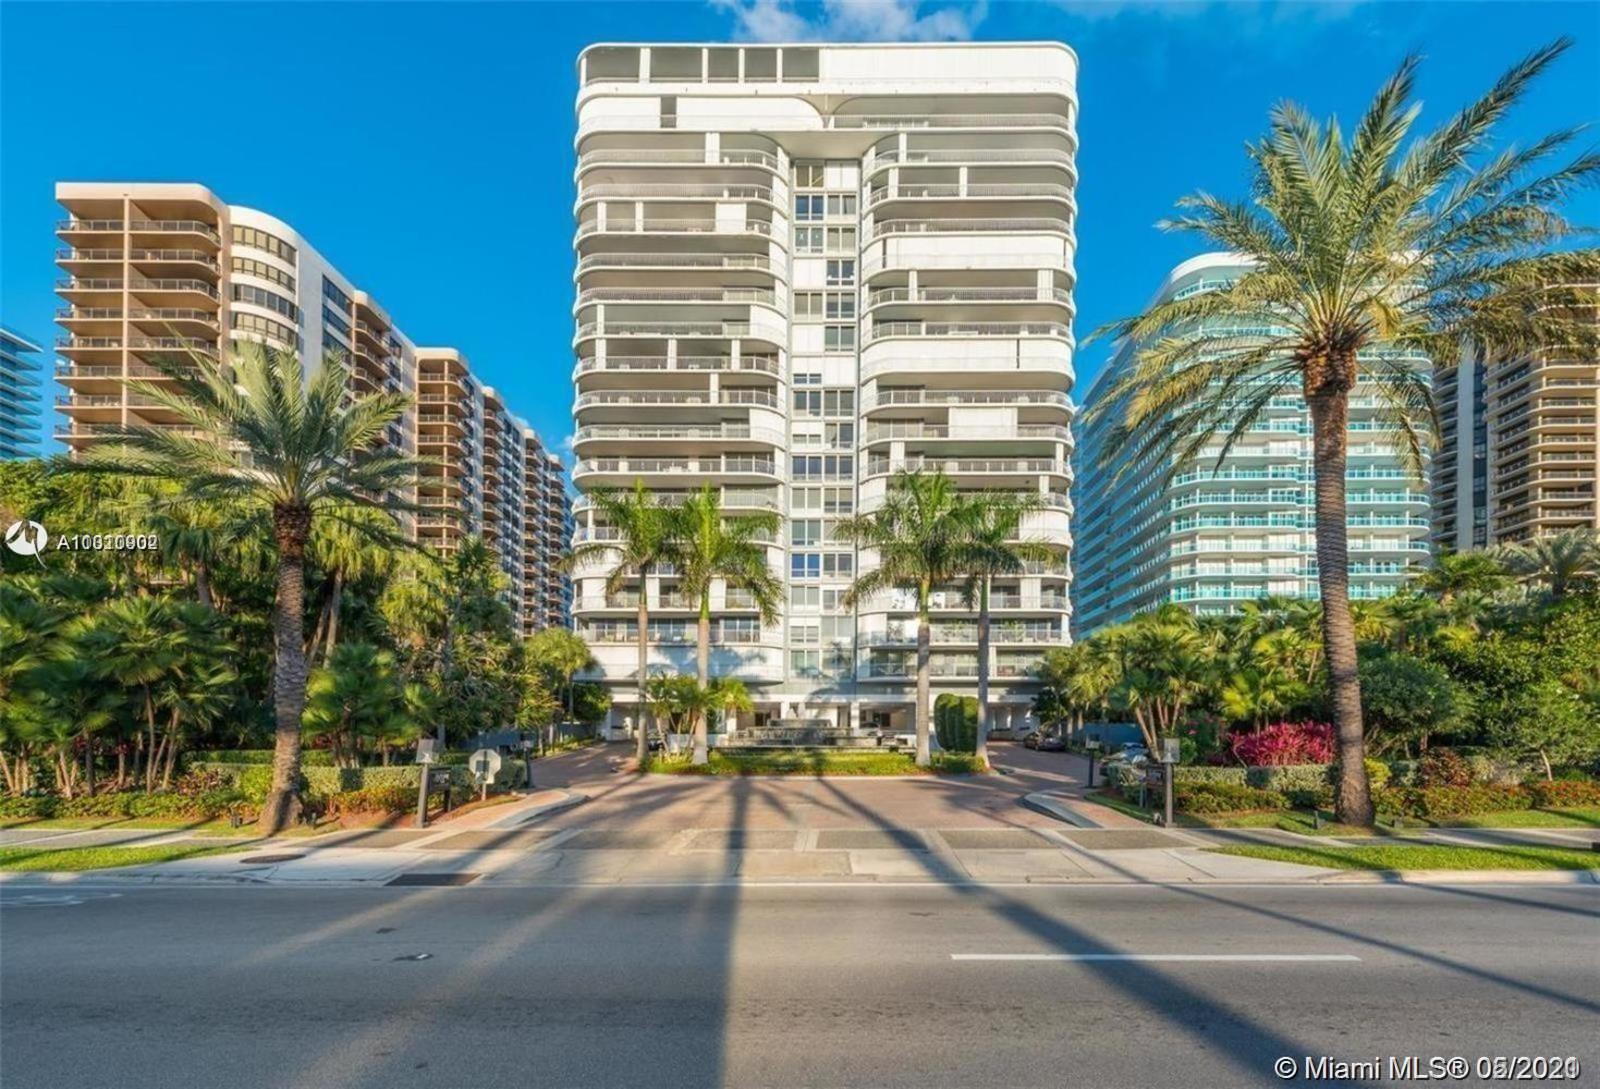 This beautifully renovated 3,340 SF largest line unit in the building offers beautiful Ocean and City views.   Large open kitchen with granite center island, laundry room/walk in pantry,   2BD/3.5BA+ Office/study (can be easily converted to 3rd BR) + Family room/den.   Large master suite with His/Her baths, 2 walk-in custom oversize closets & sitting areas.   Bal Harbour 101 is a full service building that has recently been fully renovated. Enjoy beachfront living with 24hr valet, restaurant, social room, movie theatre, tennis & basketball court, fitness club,  pool and beach service.